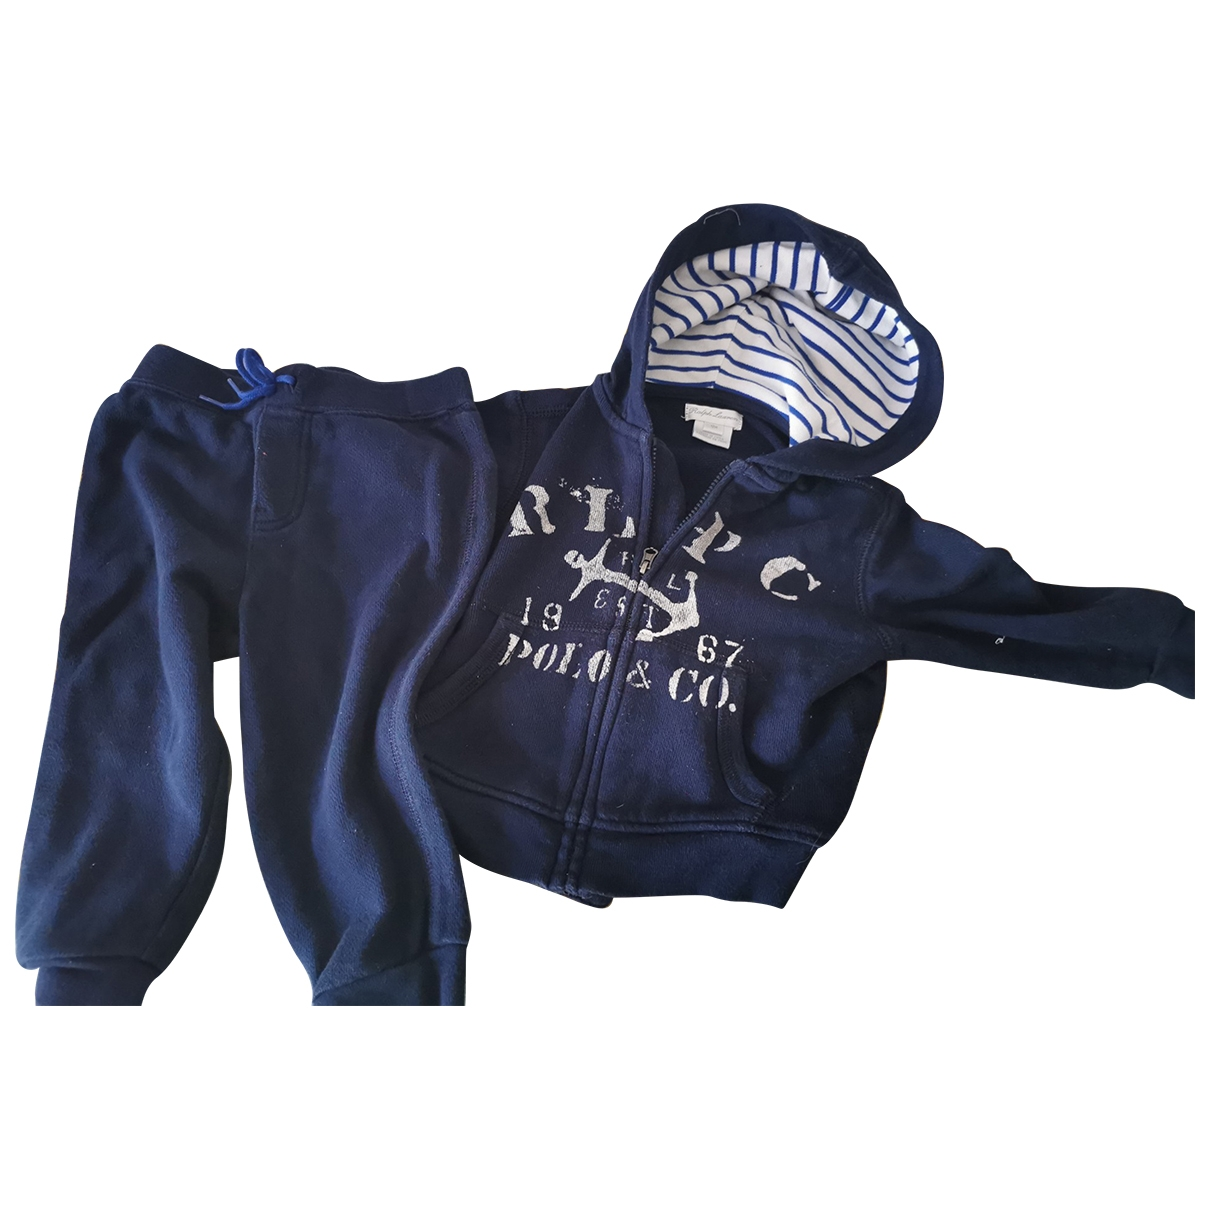 Ralph Lauren \N Blue Cotton Outfits for Kids 12 months - up to 74cm FR